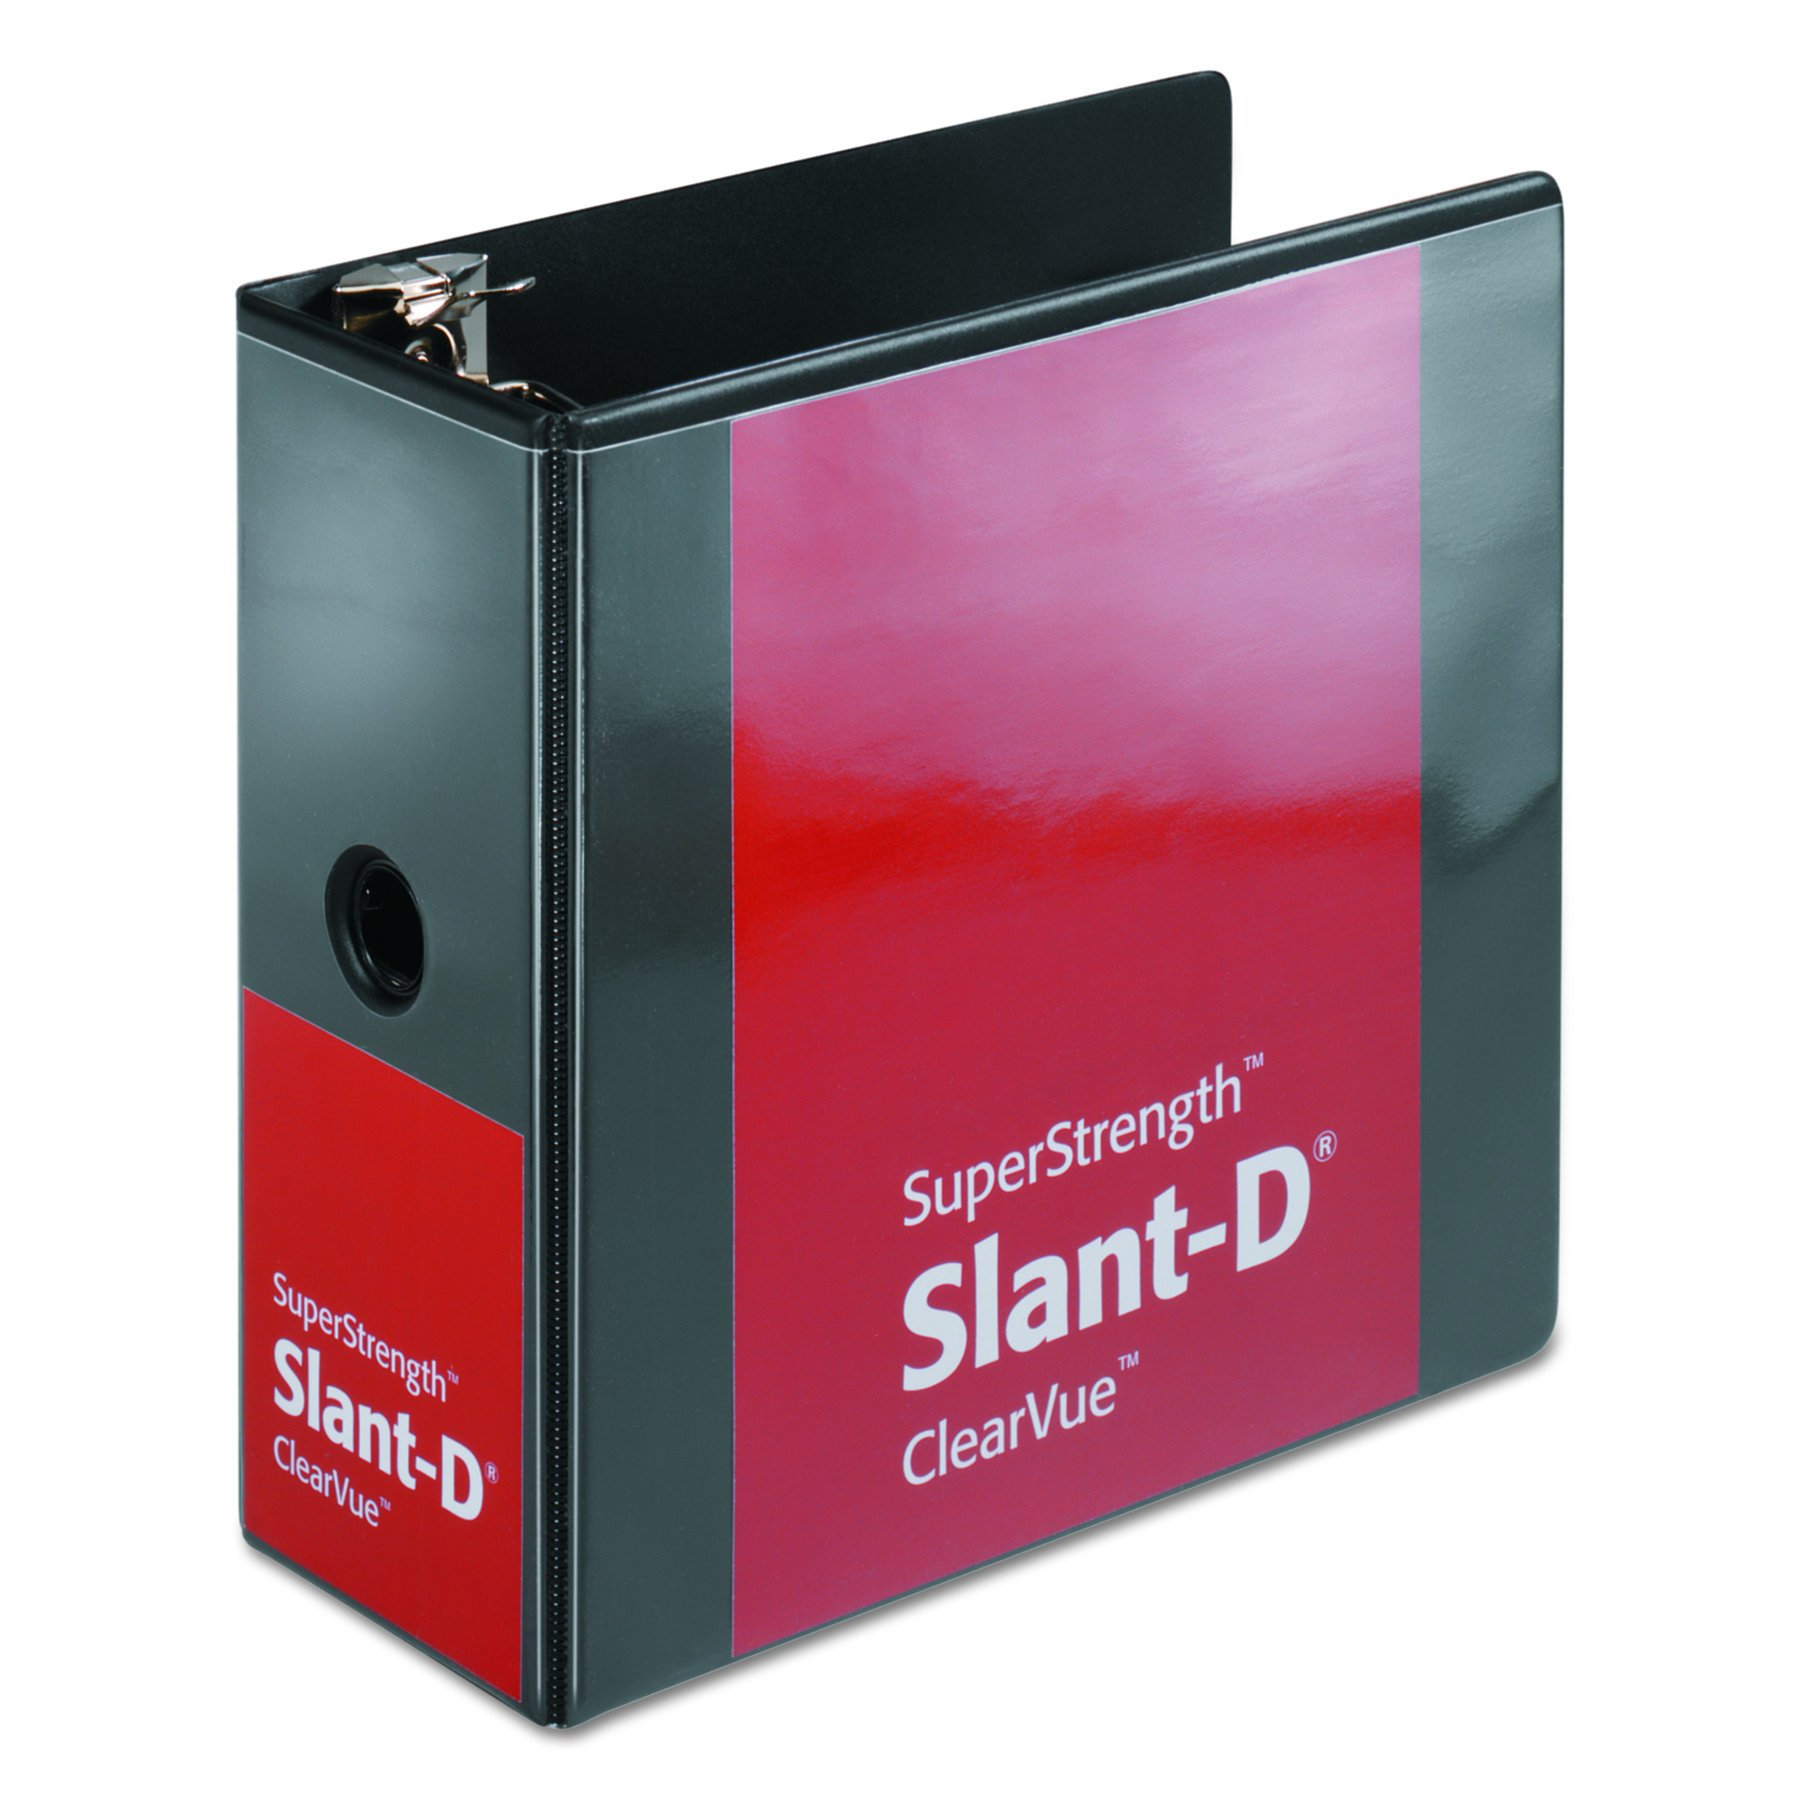 Cardinal SuperStrength ClearVue Locking Slant-D Ring Binder, 5-Inch, Black (10901) by Cardinal